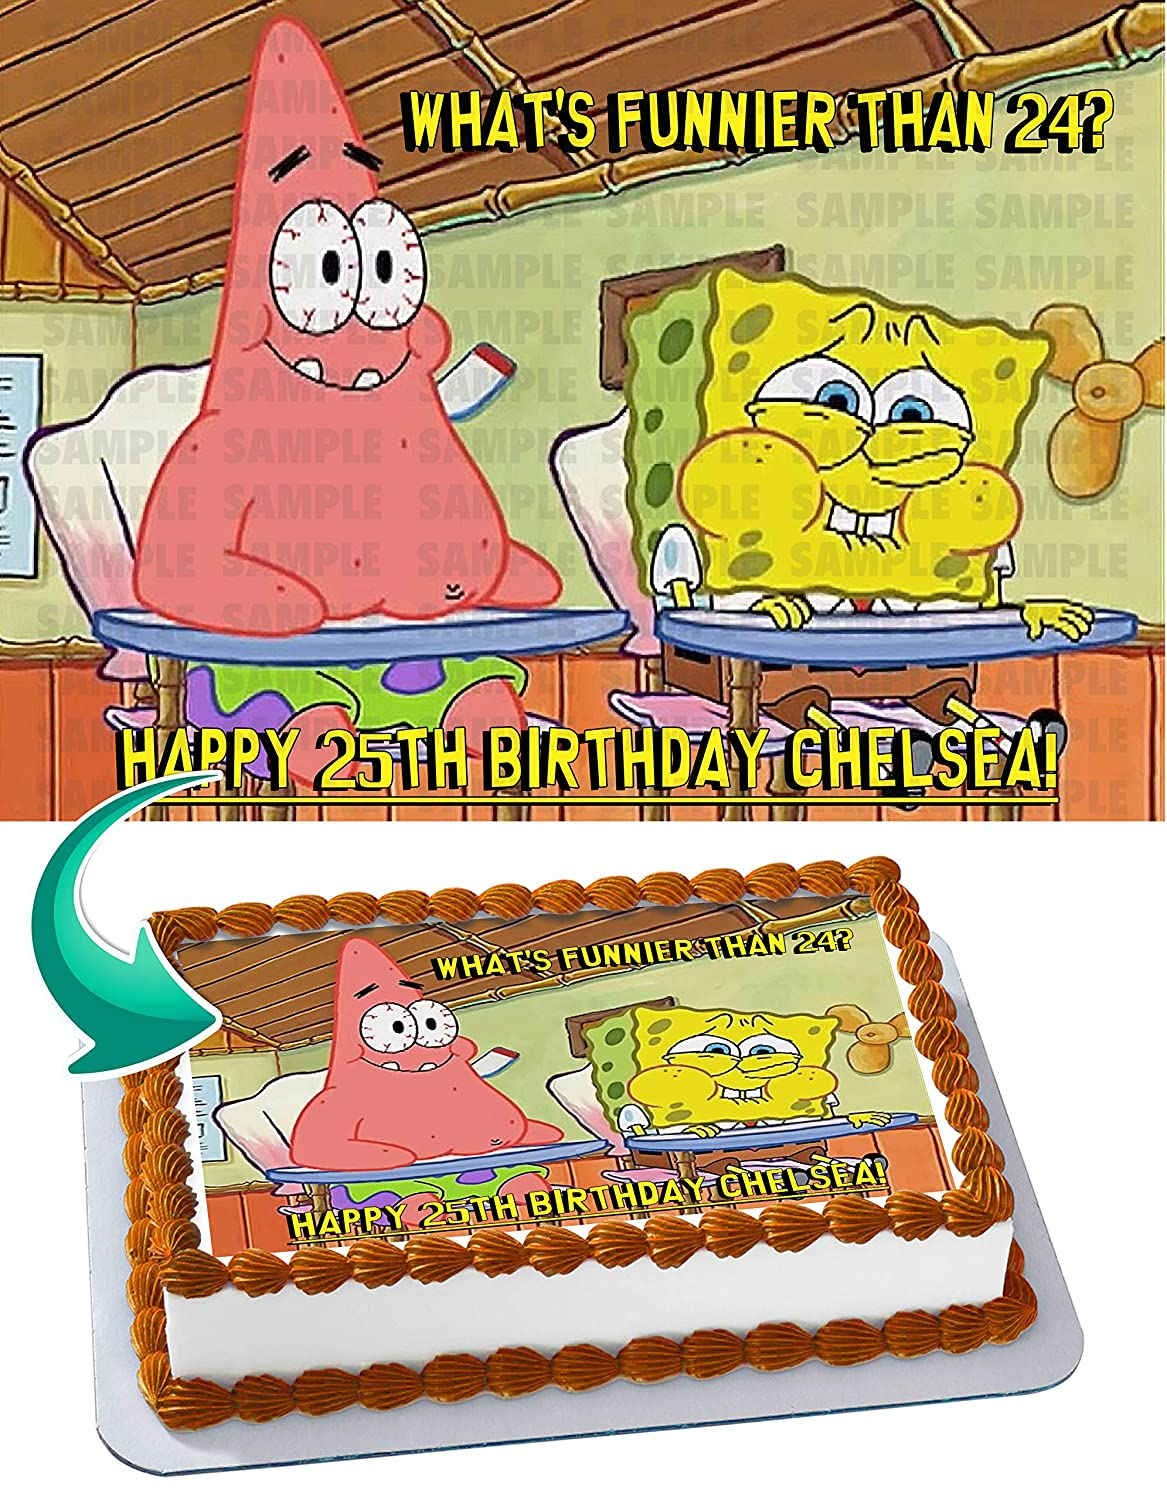 Spongebob You Know Whats Better Than 24 Edible Cake Topper Image Personalized Birthday 1 4 Sheet Custom Party Sugar Frosting Transfer